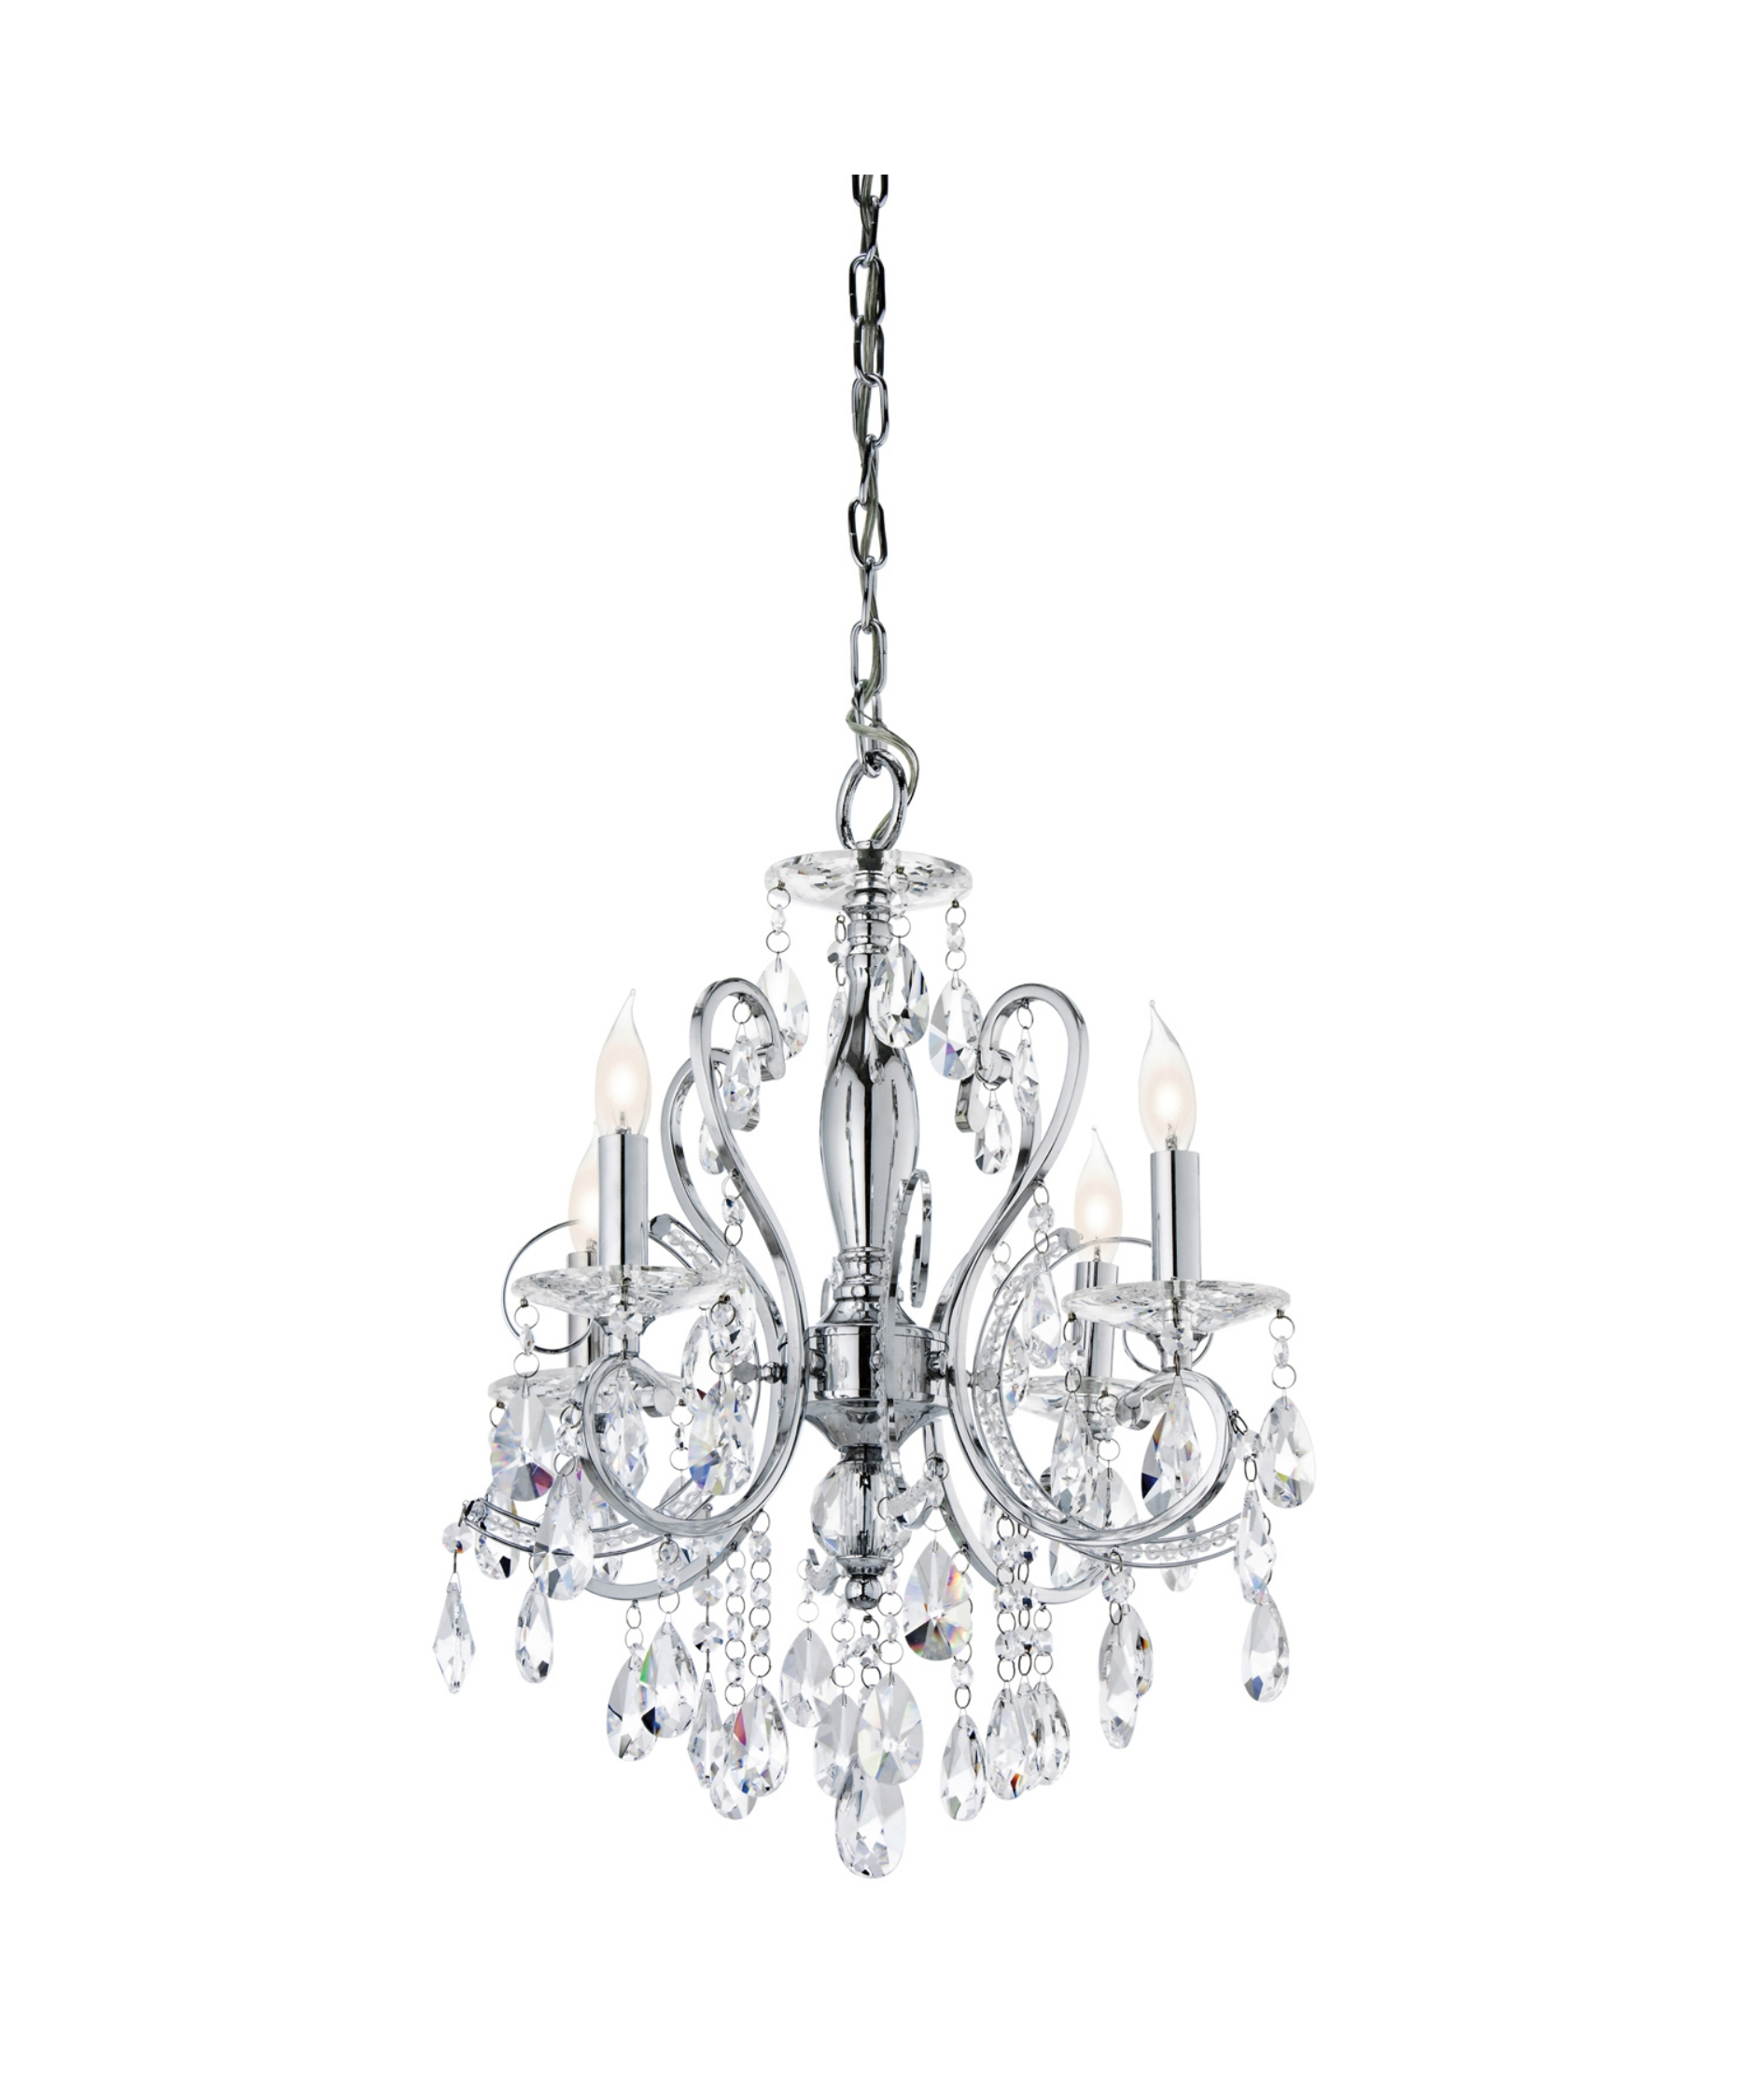 Beautiful Small Crystal Chandelier For Bathroom Contemporary For Bathroom Chandeliers Sale (Image 5 of 15)